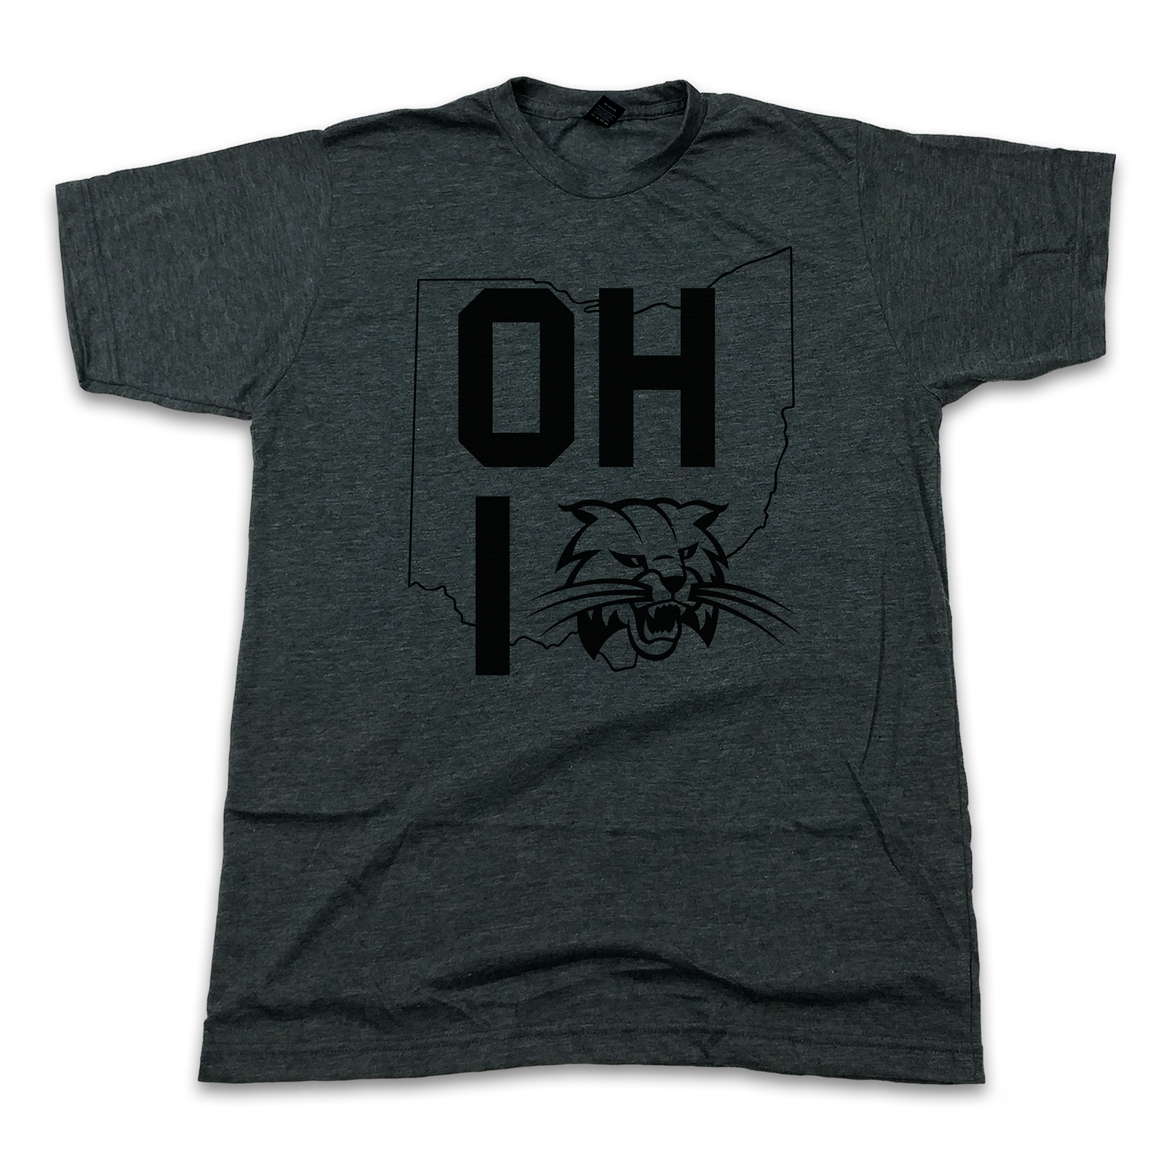 Ohio Bobcats - Cincy Shirts